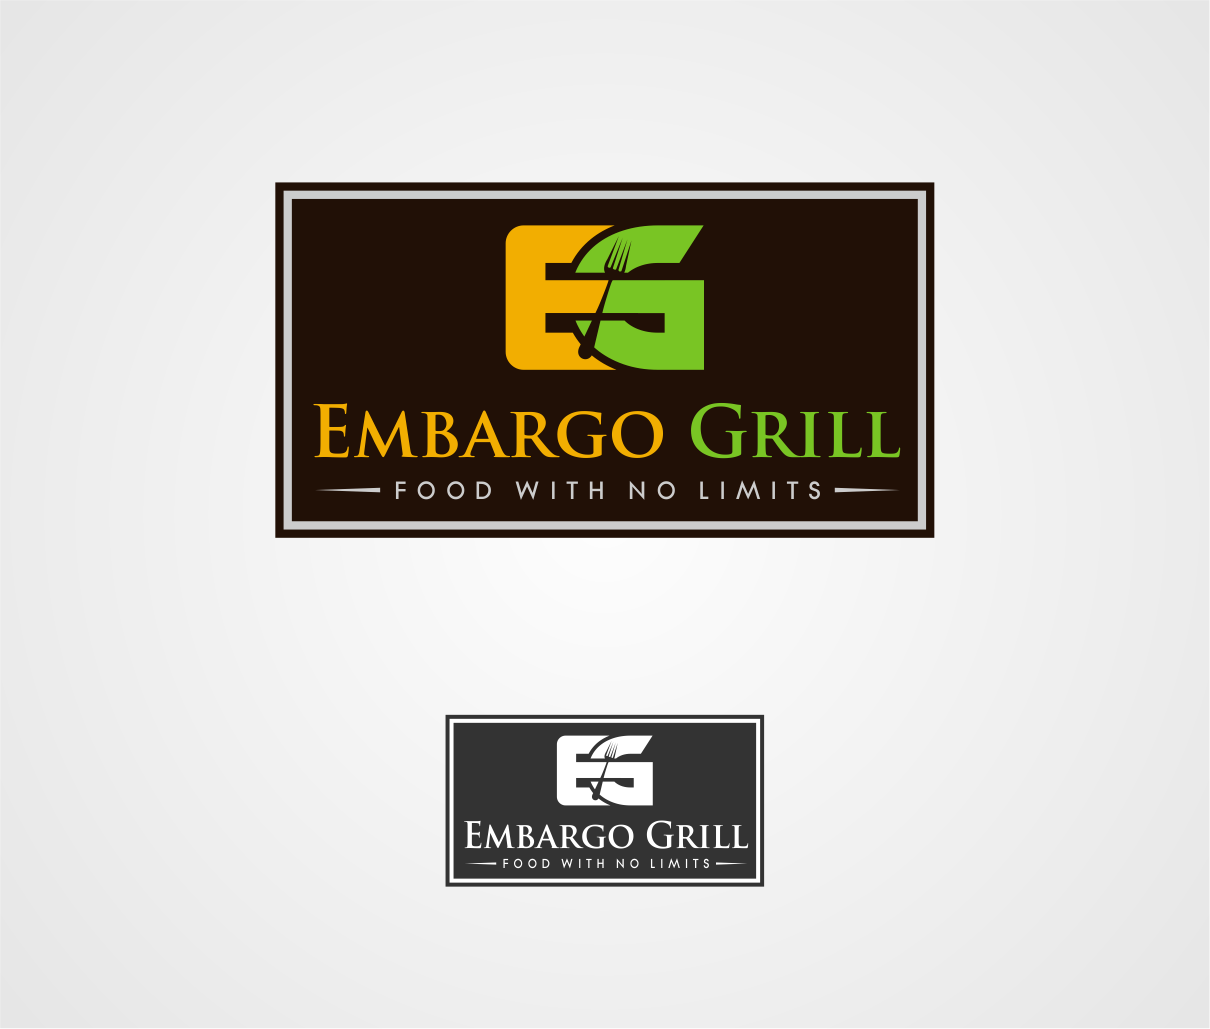 Logo Design by haidu - Entry No. 26 in the Logo Design Contest Captivating Logo Design for Embargo Grill.